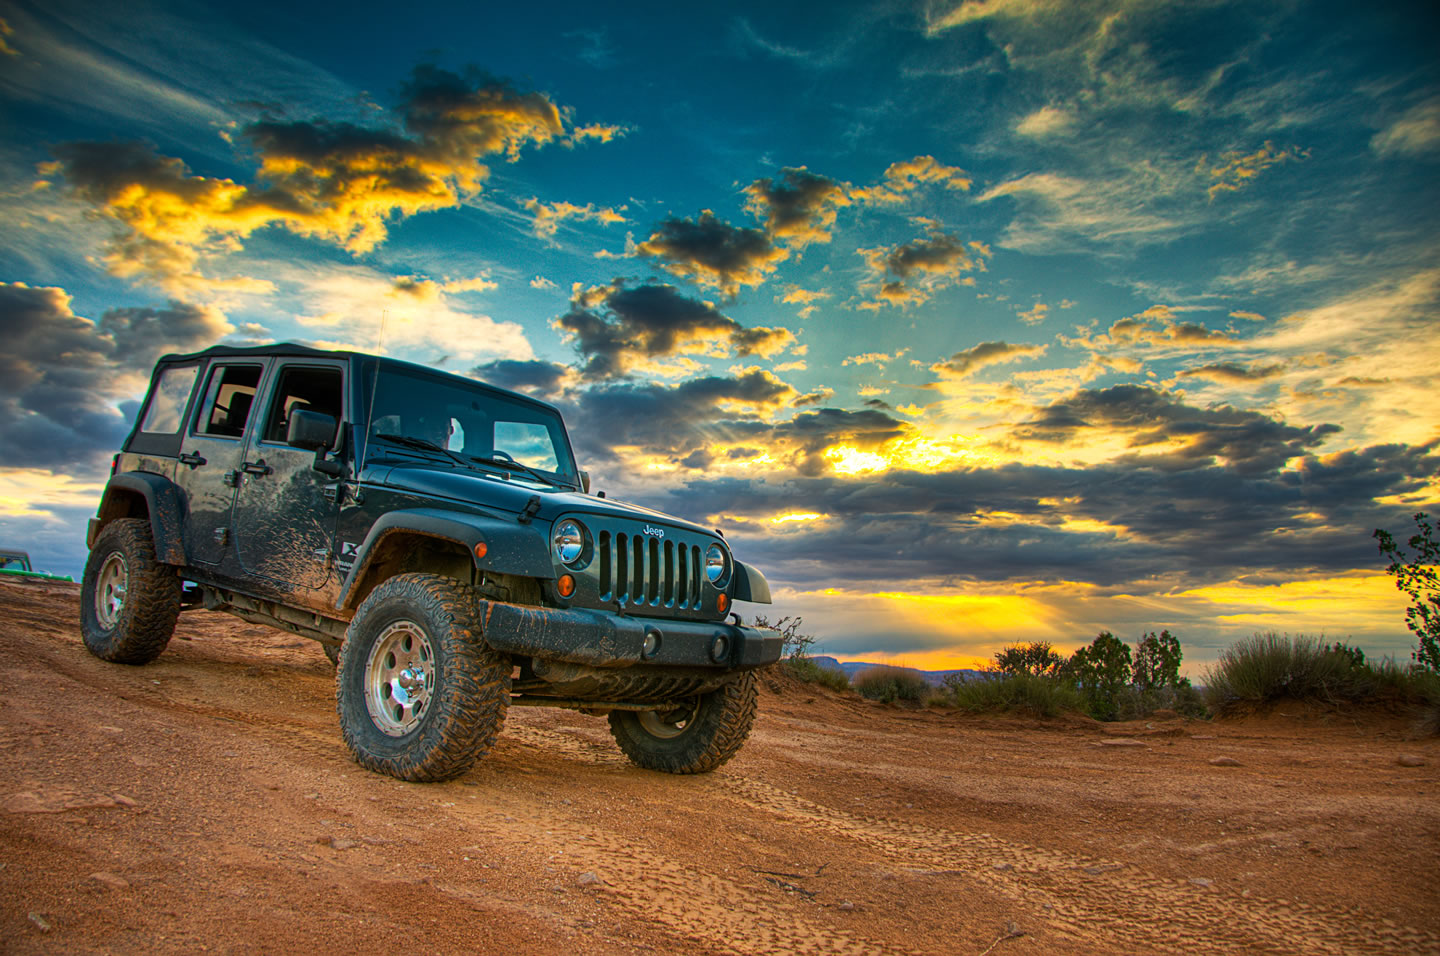 Jeep Wrangler Dealership >> Moab, a Jeep, and a Great Sunset | dav.d photography